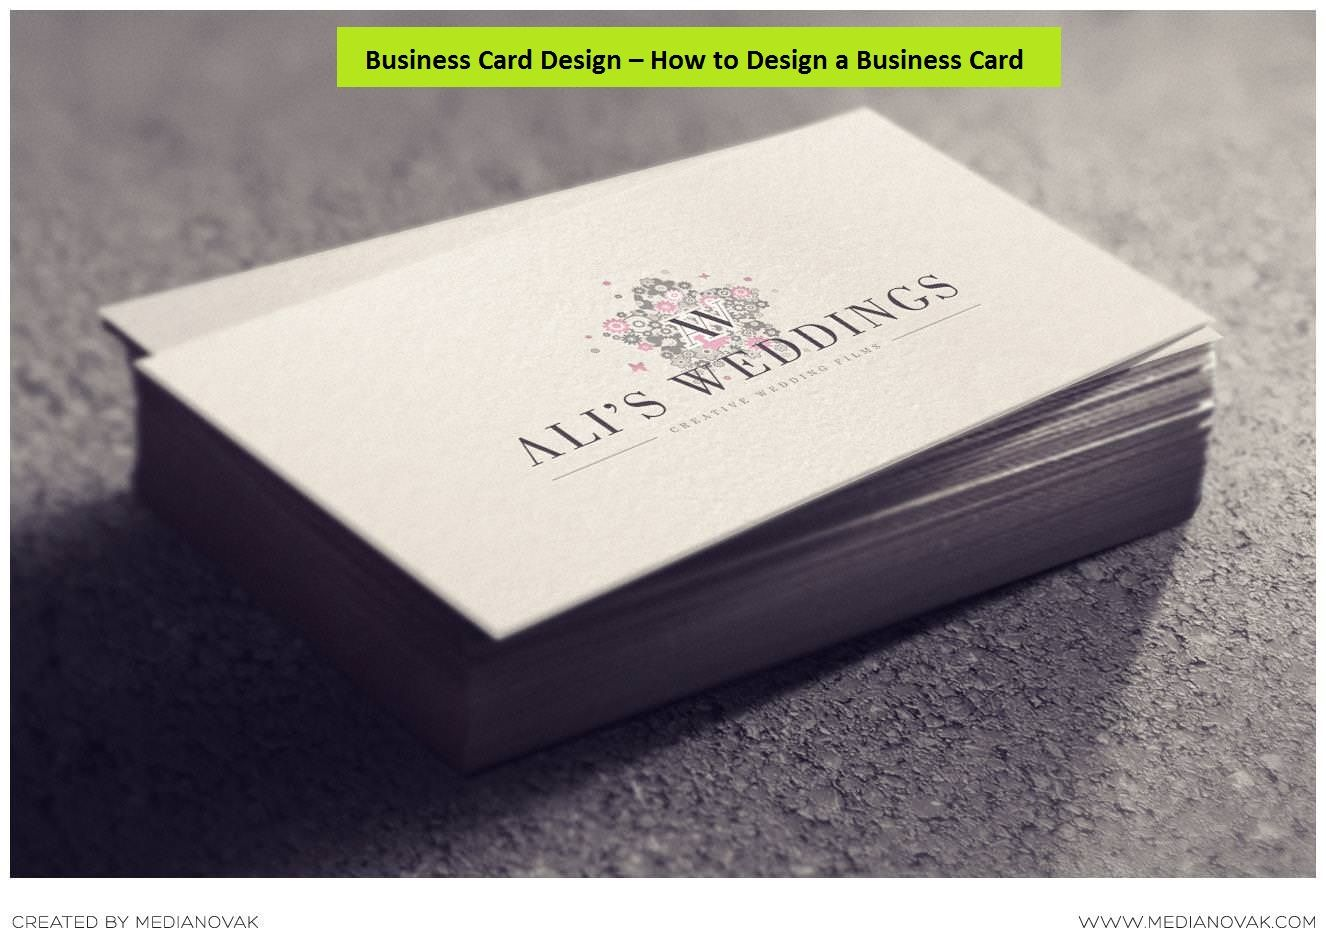 Business card design how to design a business card a well business card design how to design a business card a well business card design magicingreecefo Image collections